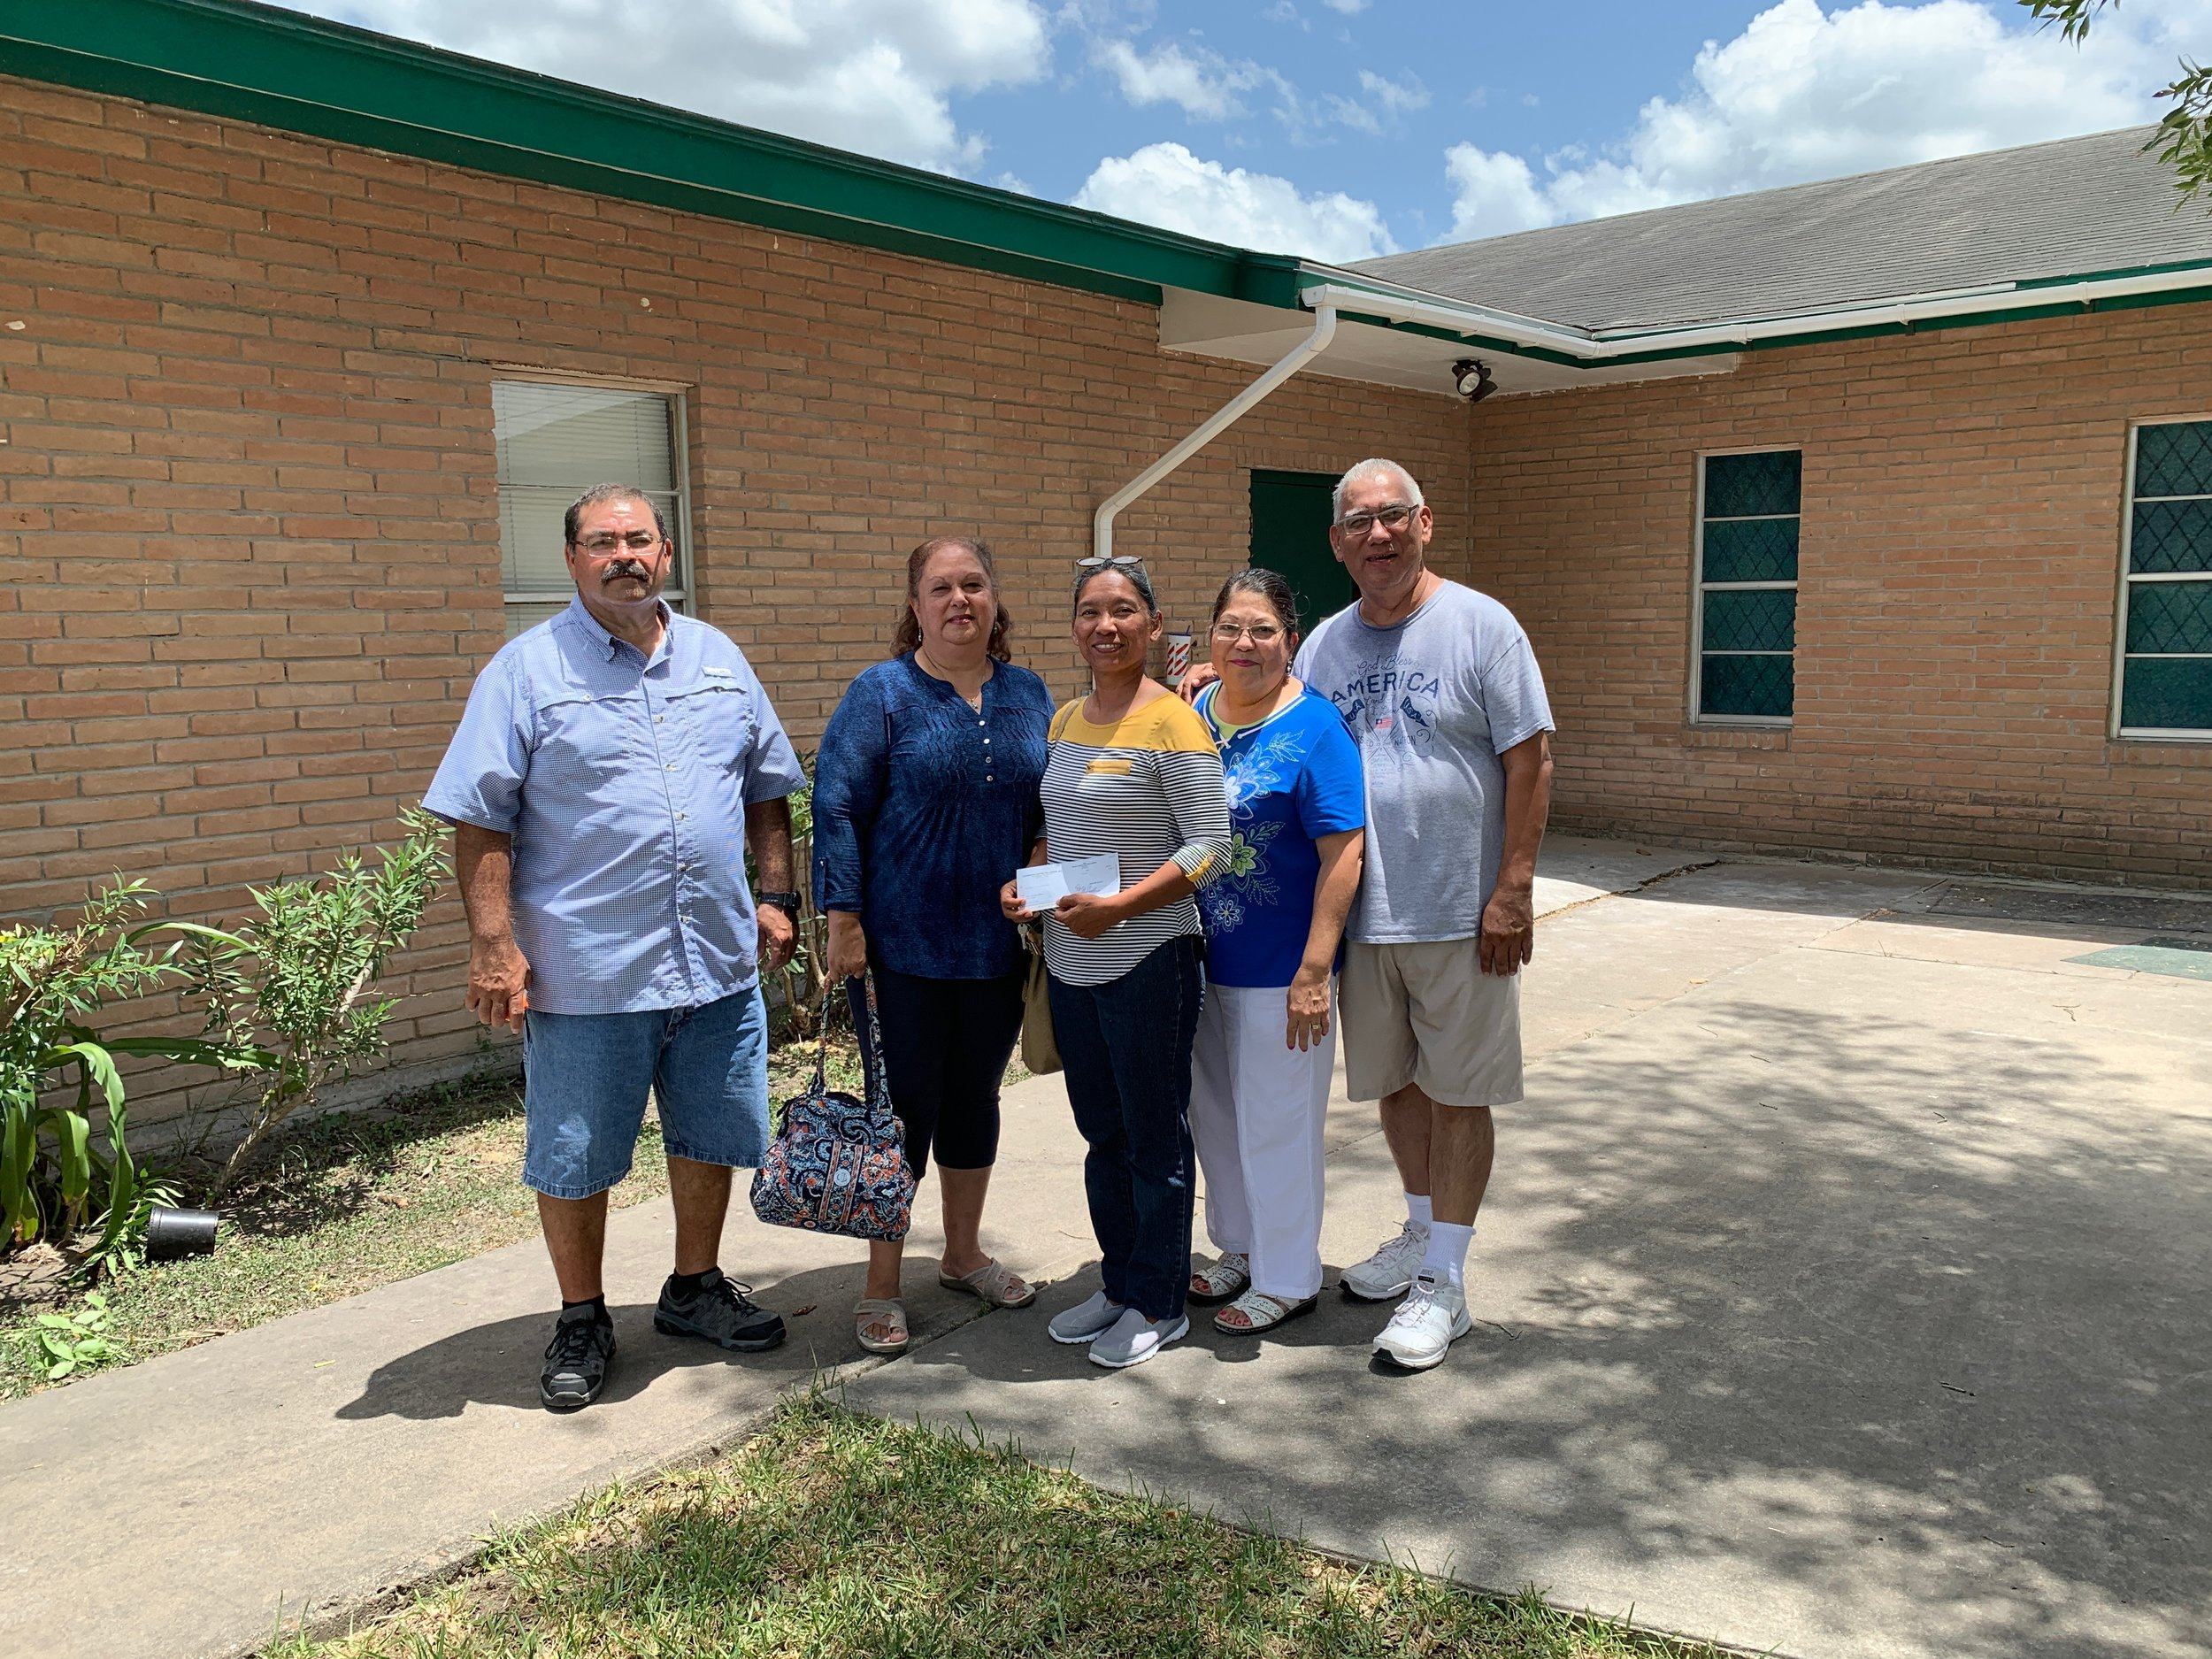 Pastor Roberto Reyes (right) and leaders of Iglesia Bautista Avondale in Harlingen, Texas, expressed thanks for disaster-recovery funds provided by CBF. The money is helping the church acquire supplies to repair its facilities, damaged in a summer flood.